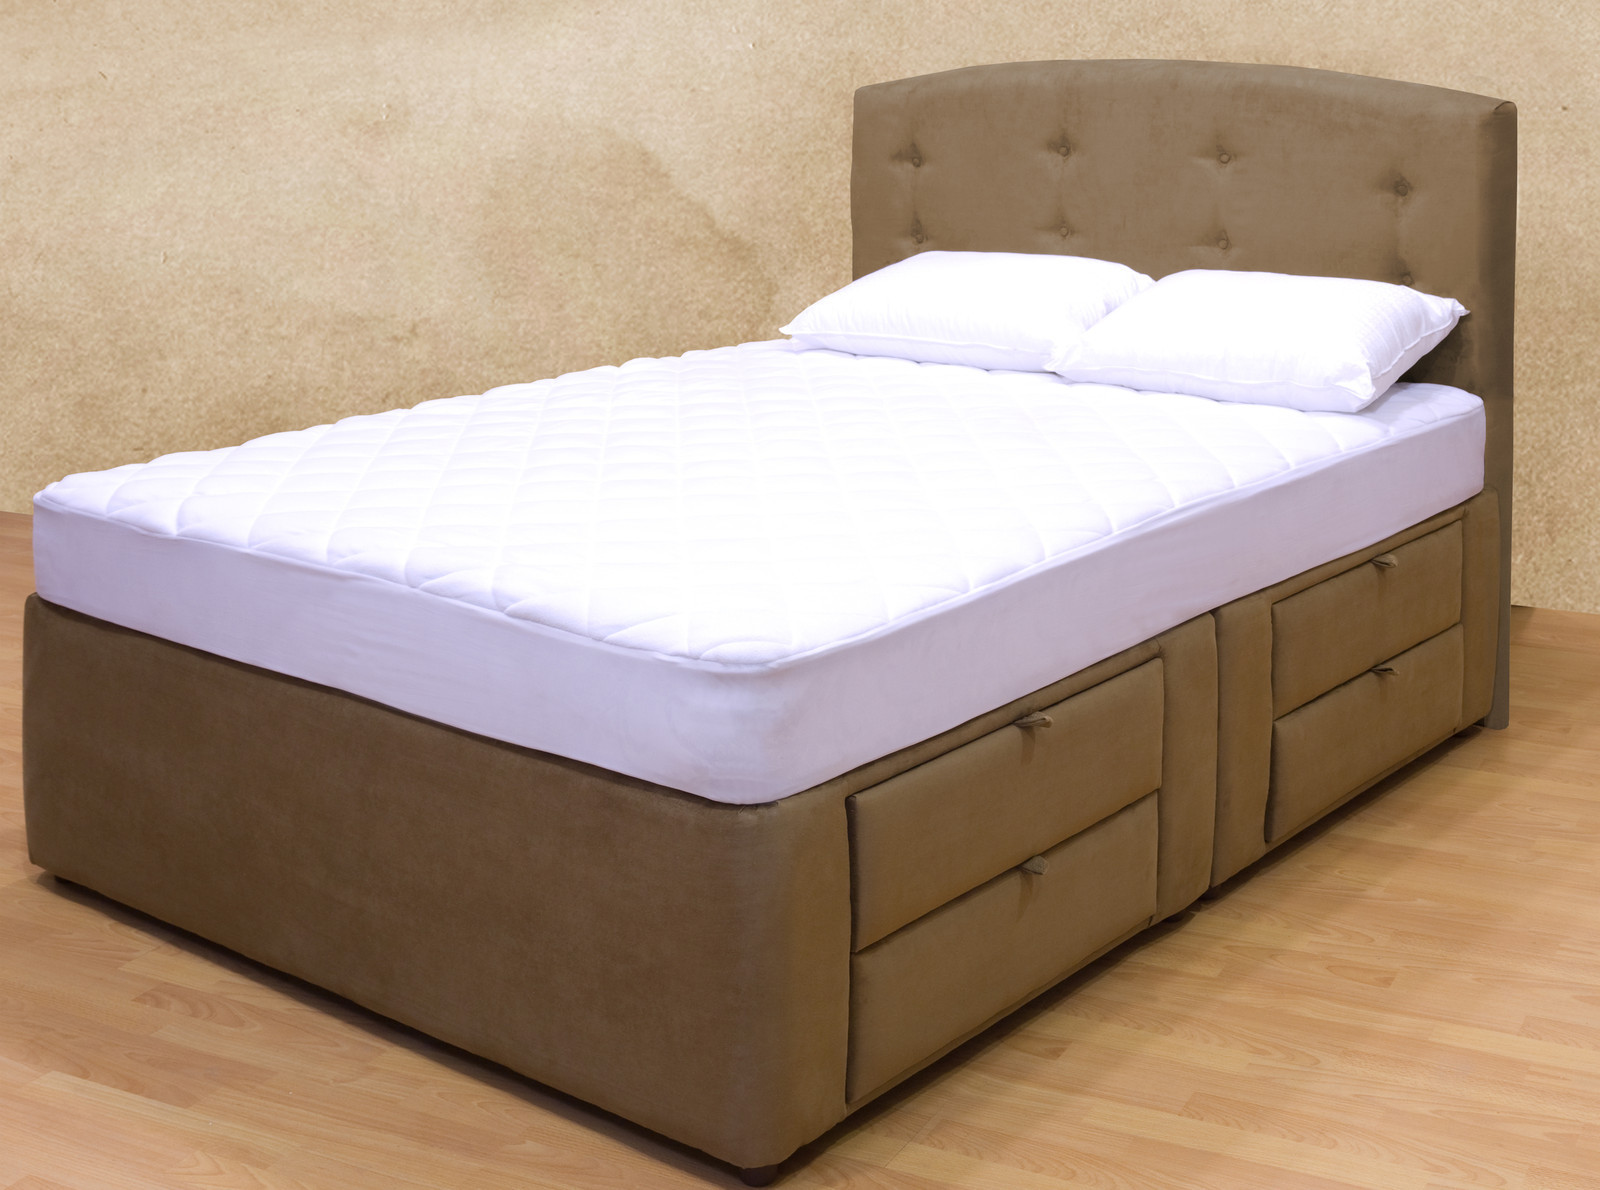 Image of: Drawer Bed Platform Ideas